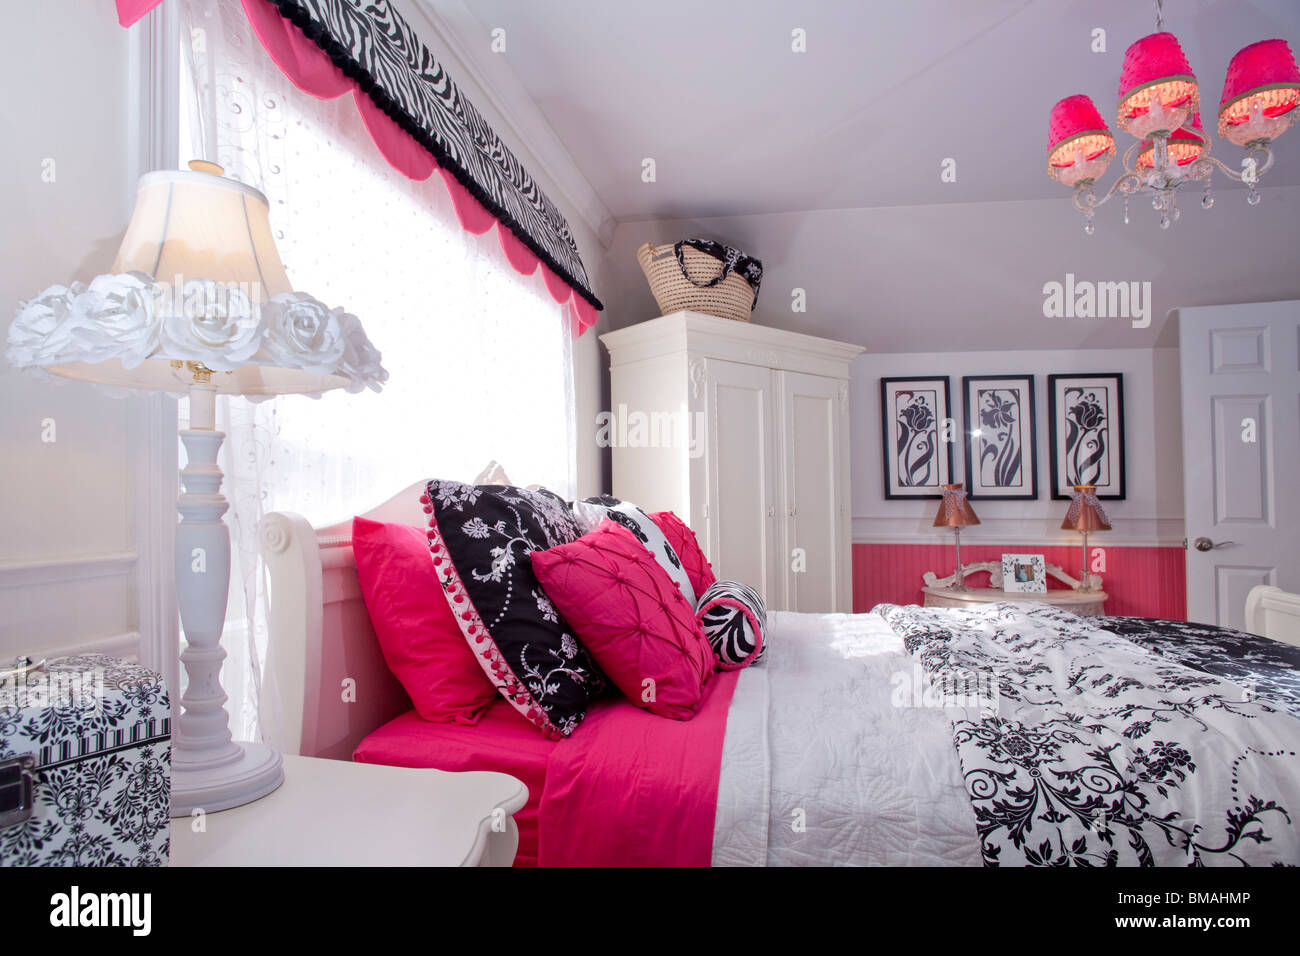 Teenager Bedroom In American House In White, Pink And Black Colors With  Matching Decorations